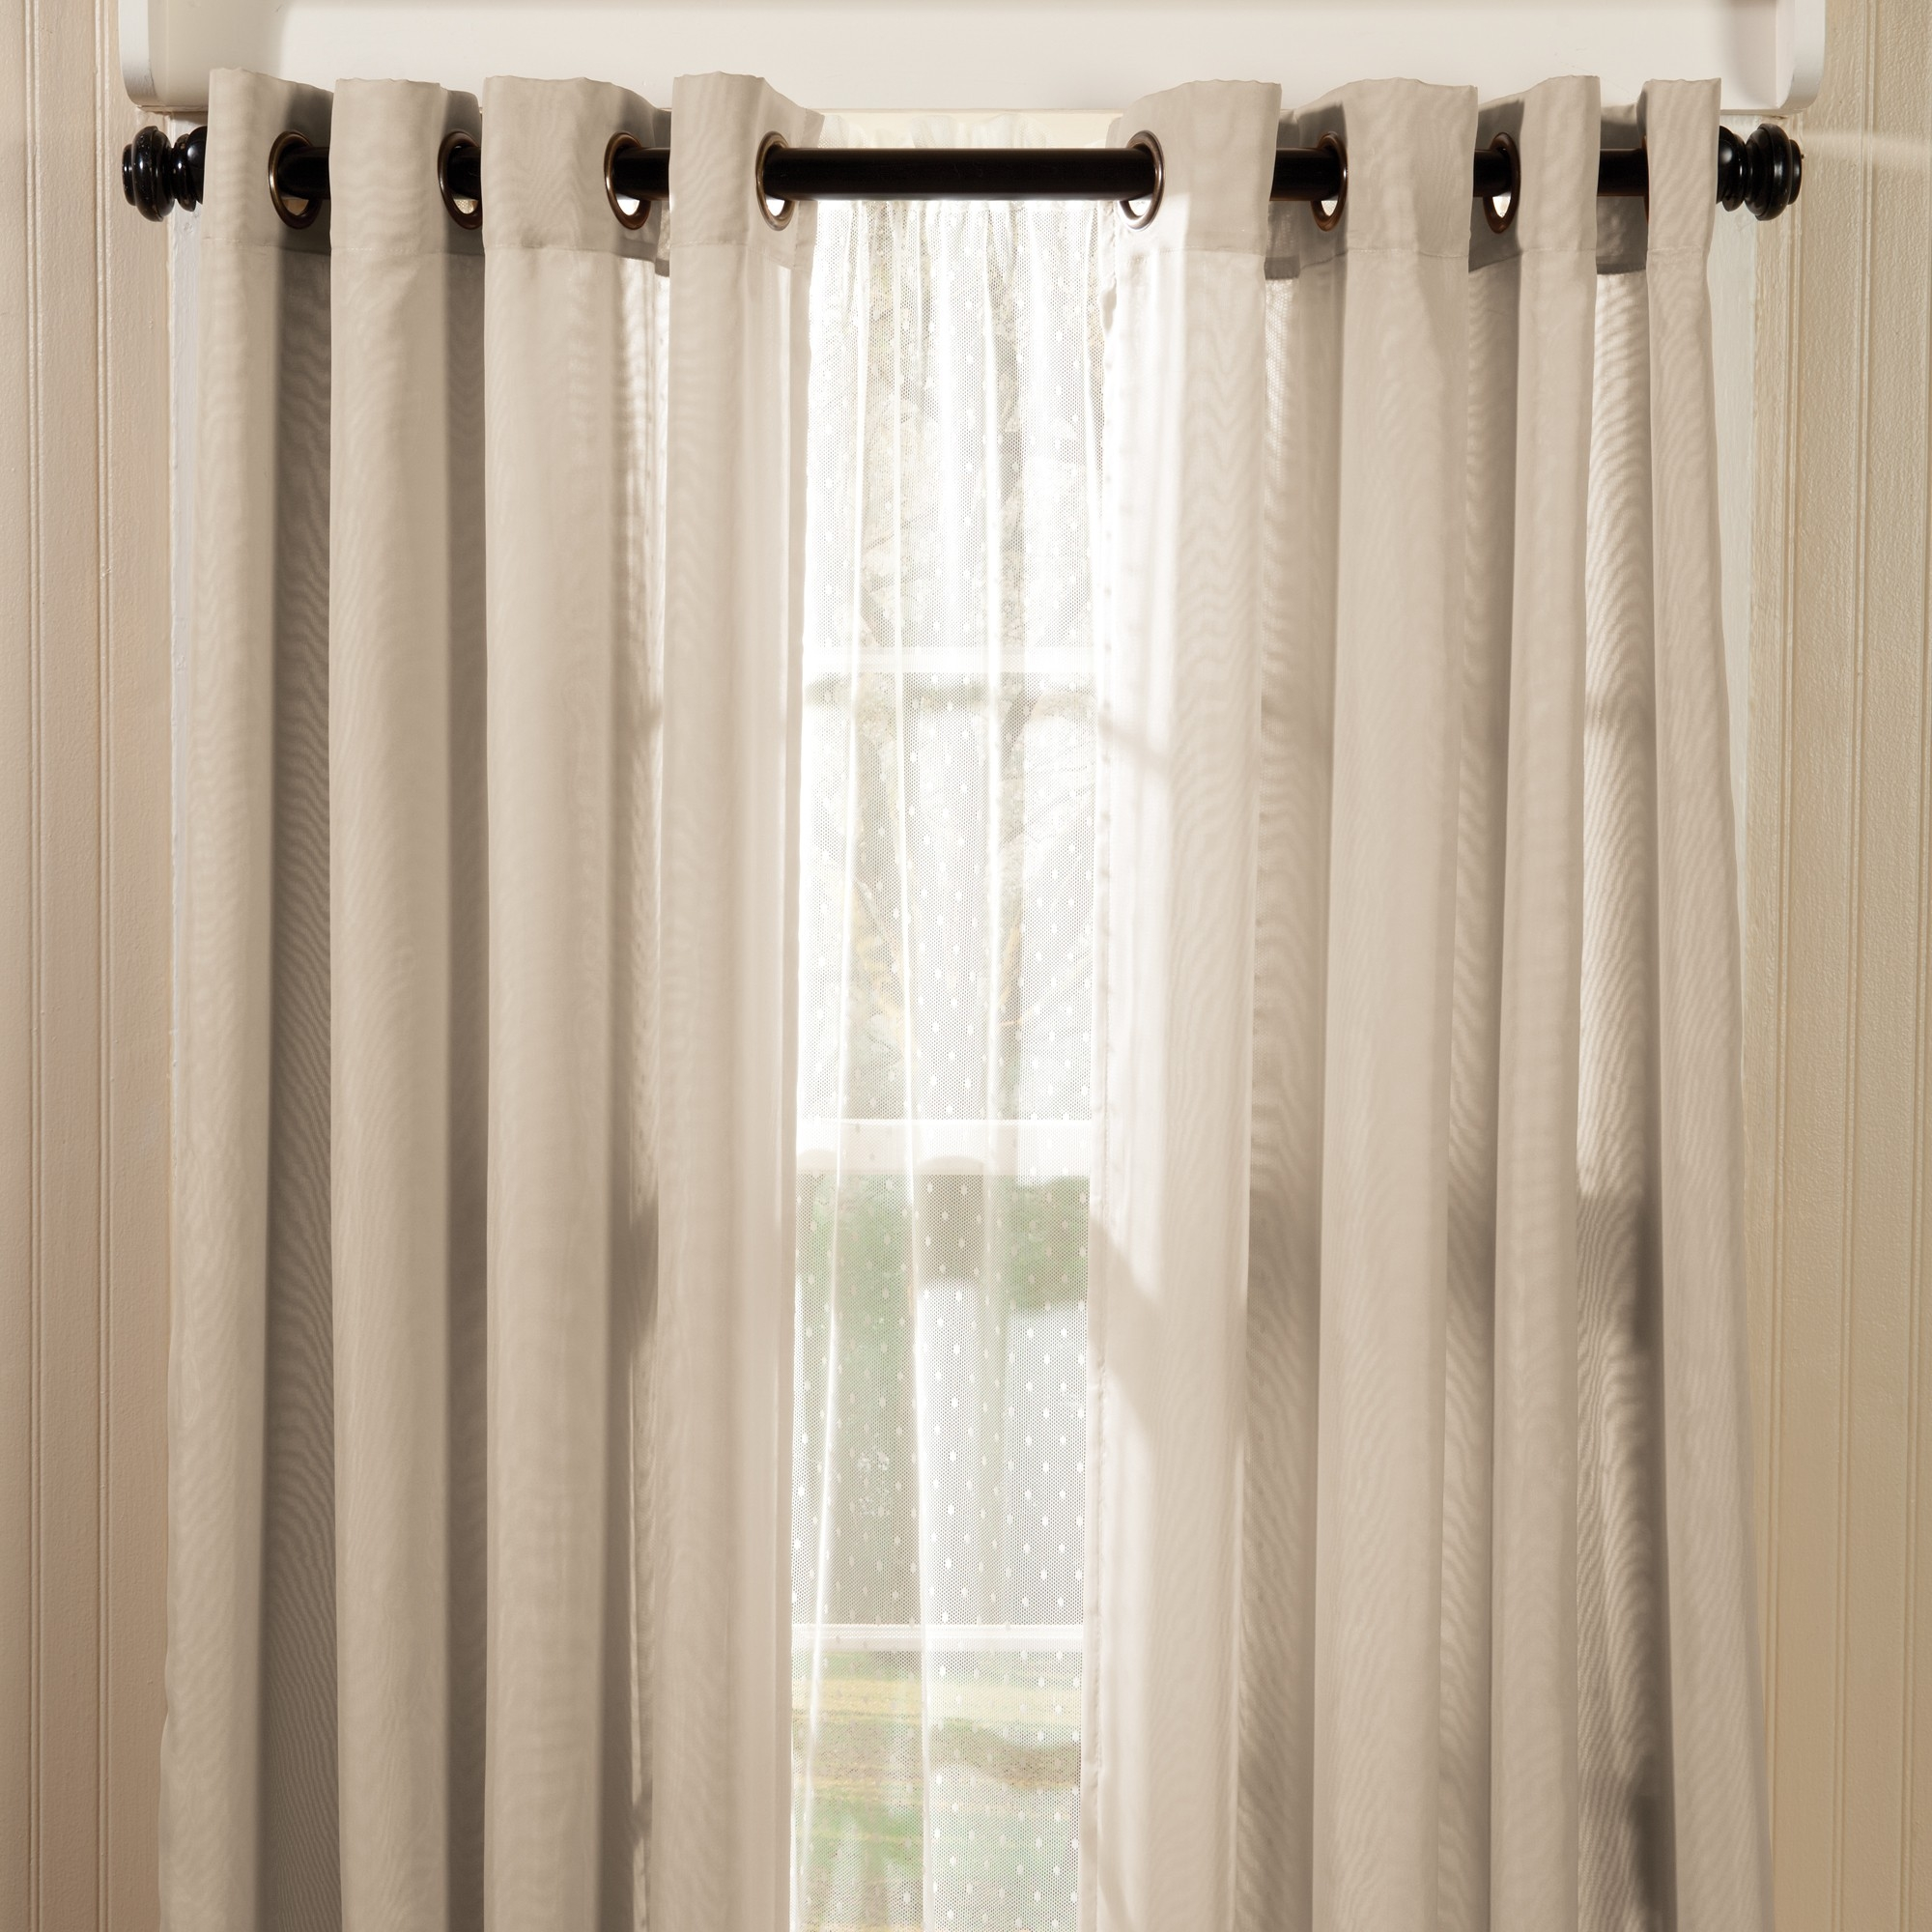 Interior Marvellous Curtain Sheers With Cute Color For Window In Curtain Sheers (View 8 of 25)